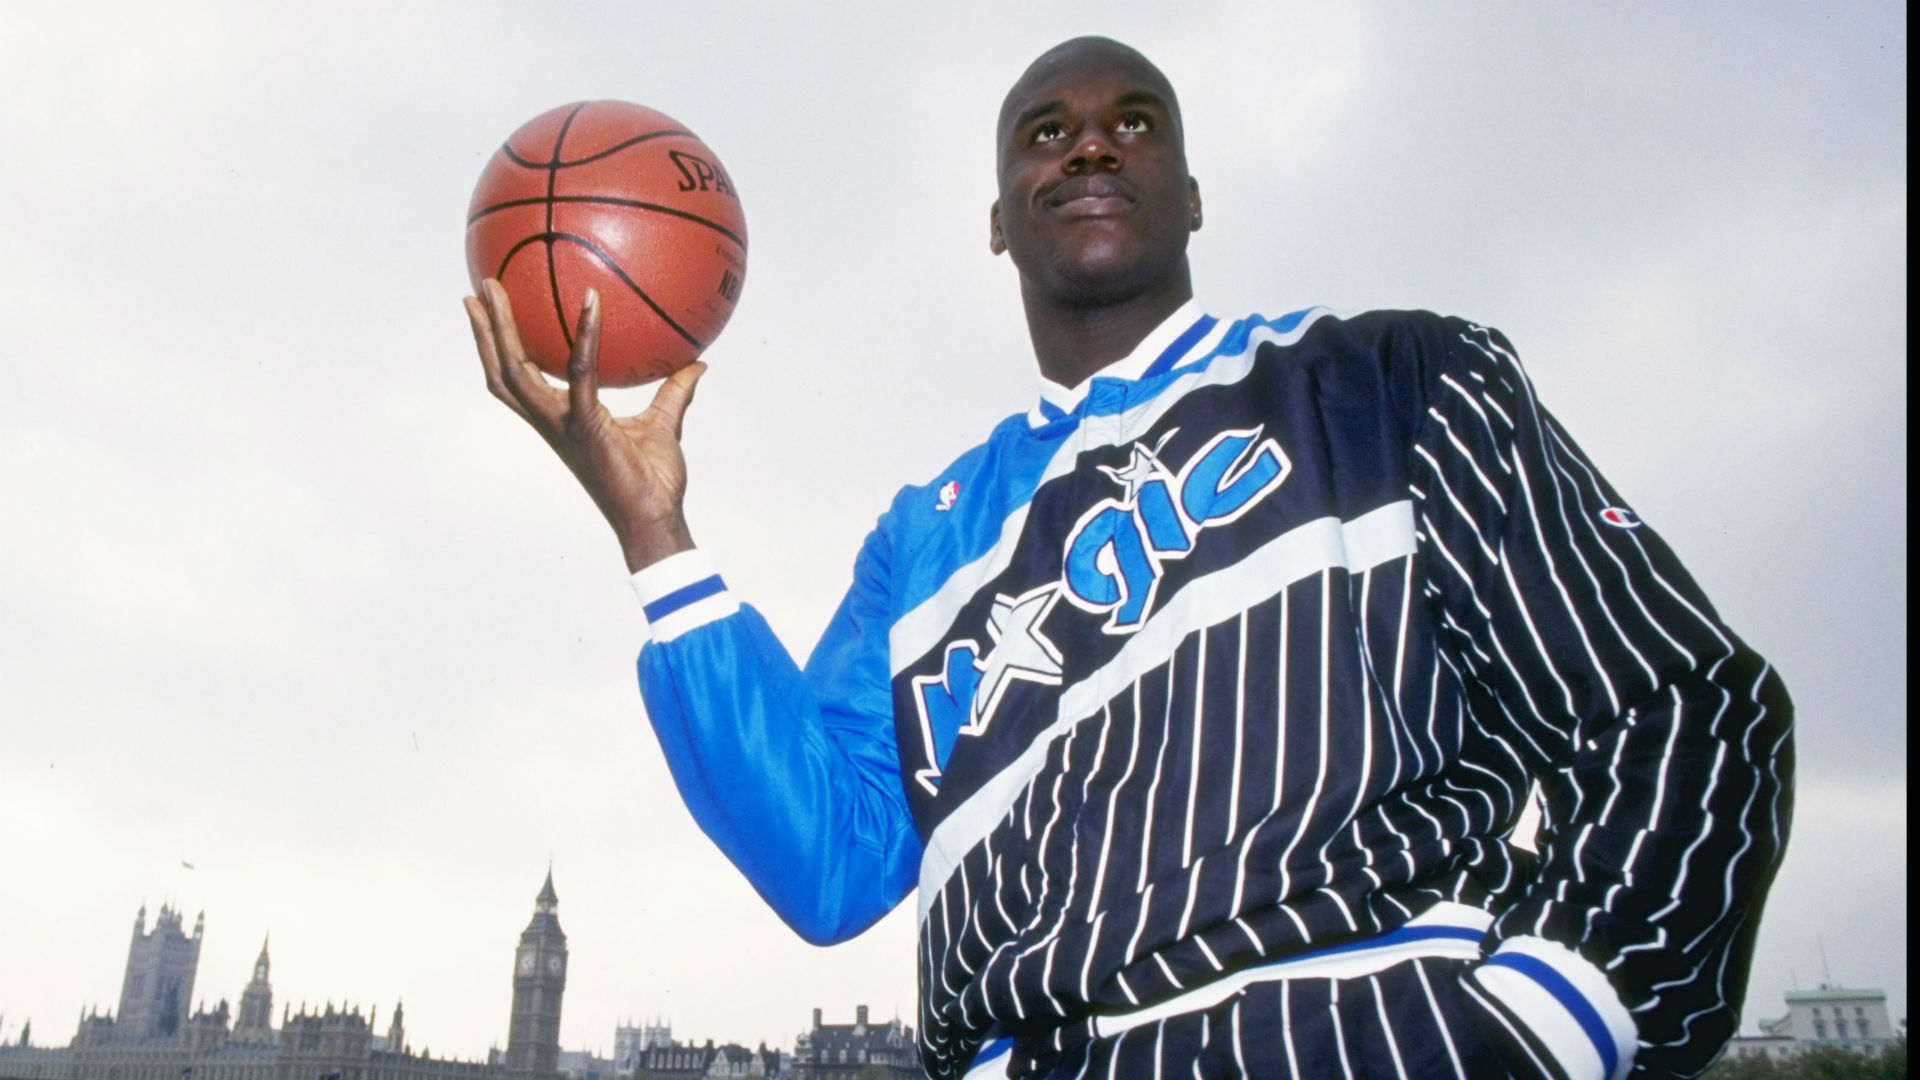 Shaquille O Neal says he regrets leaving the Magic for the Lakers